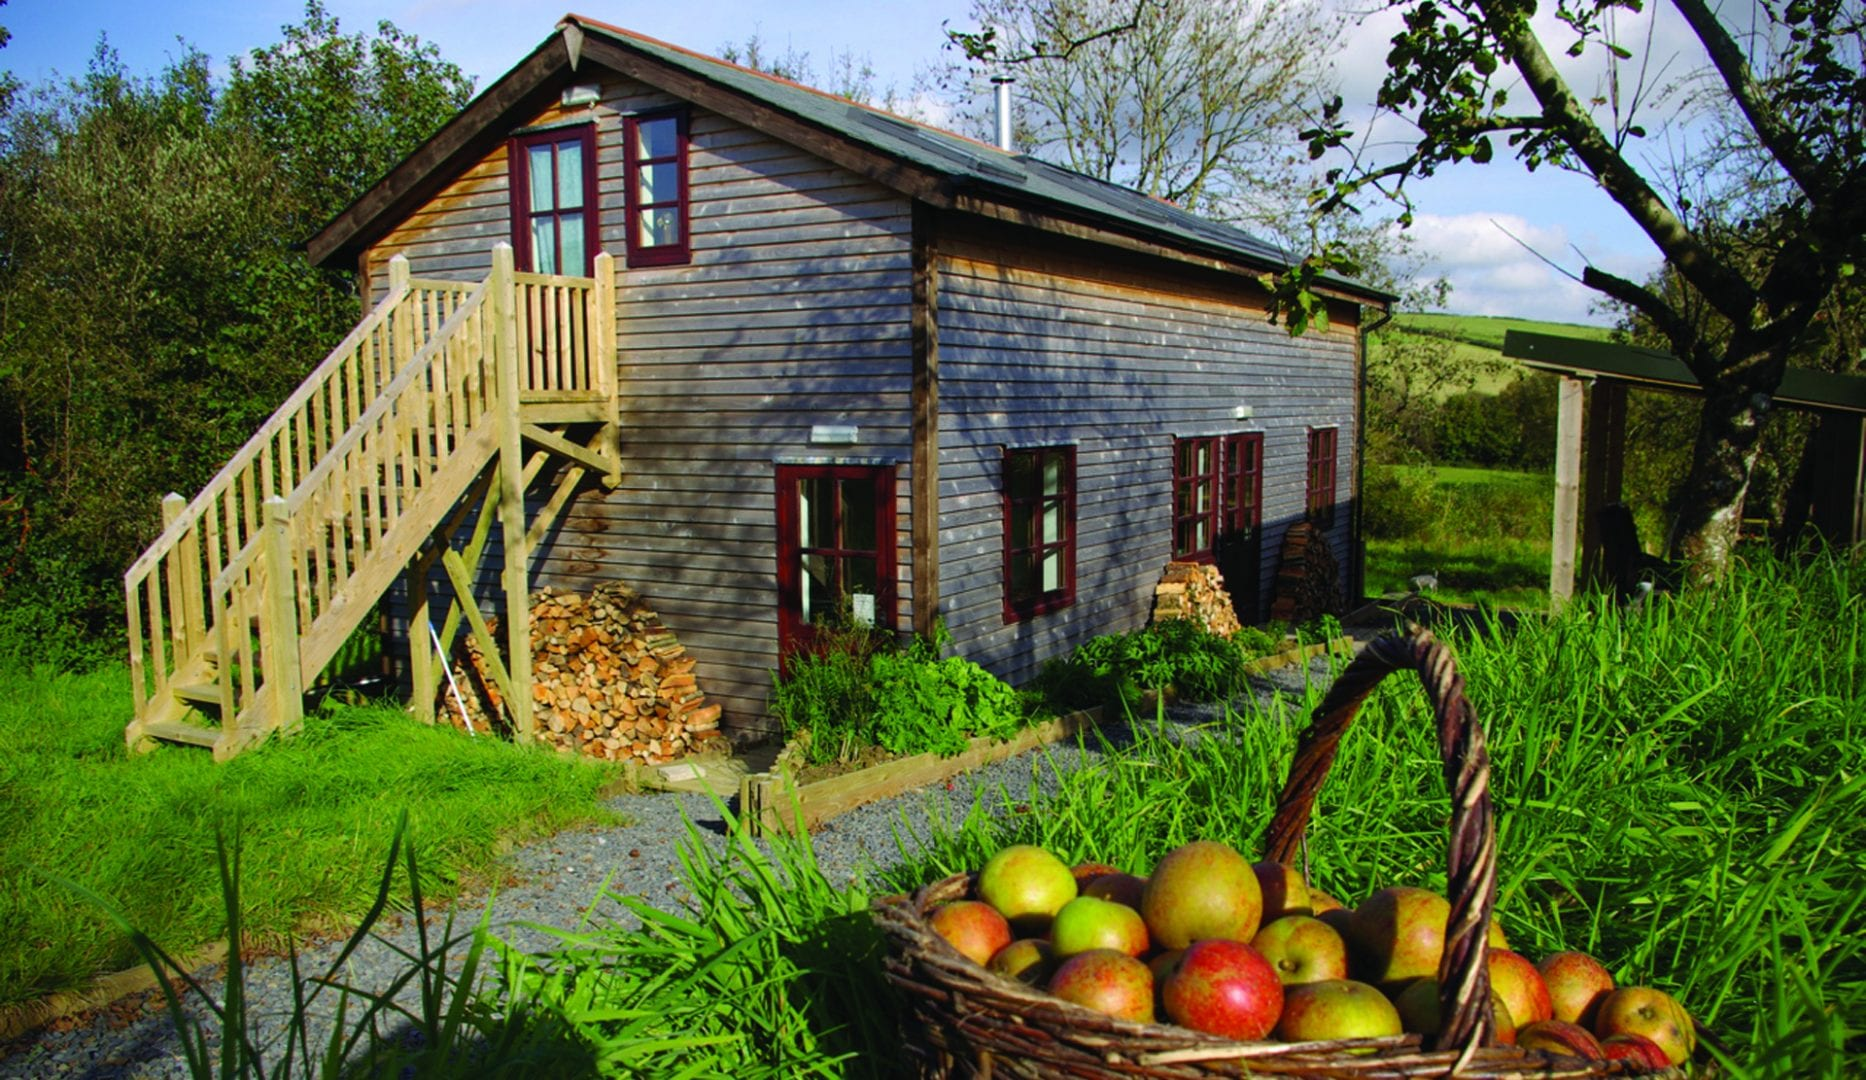 Yarde Orchard Bunkhouse with a basket of apples